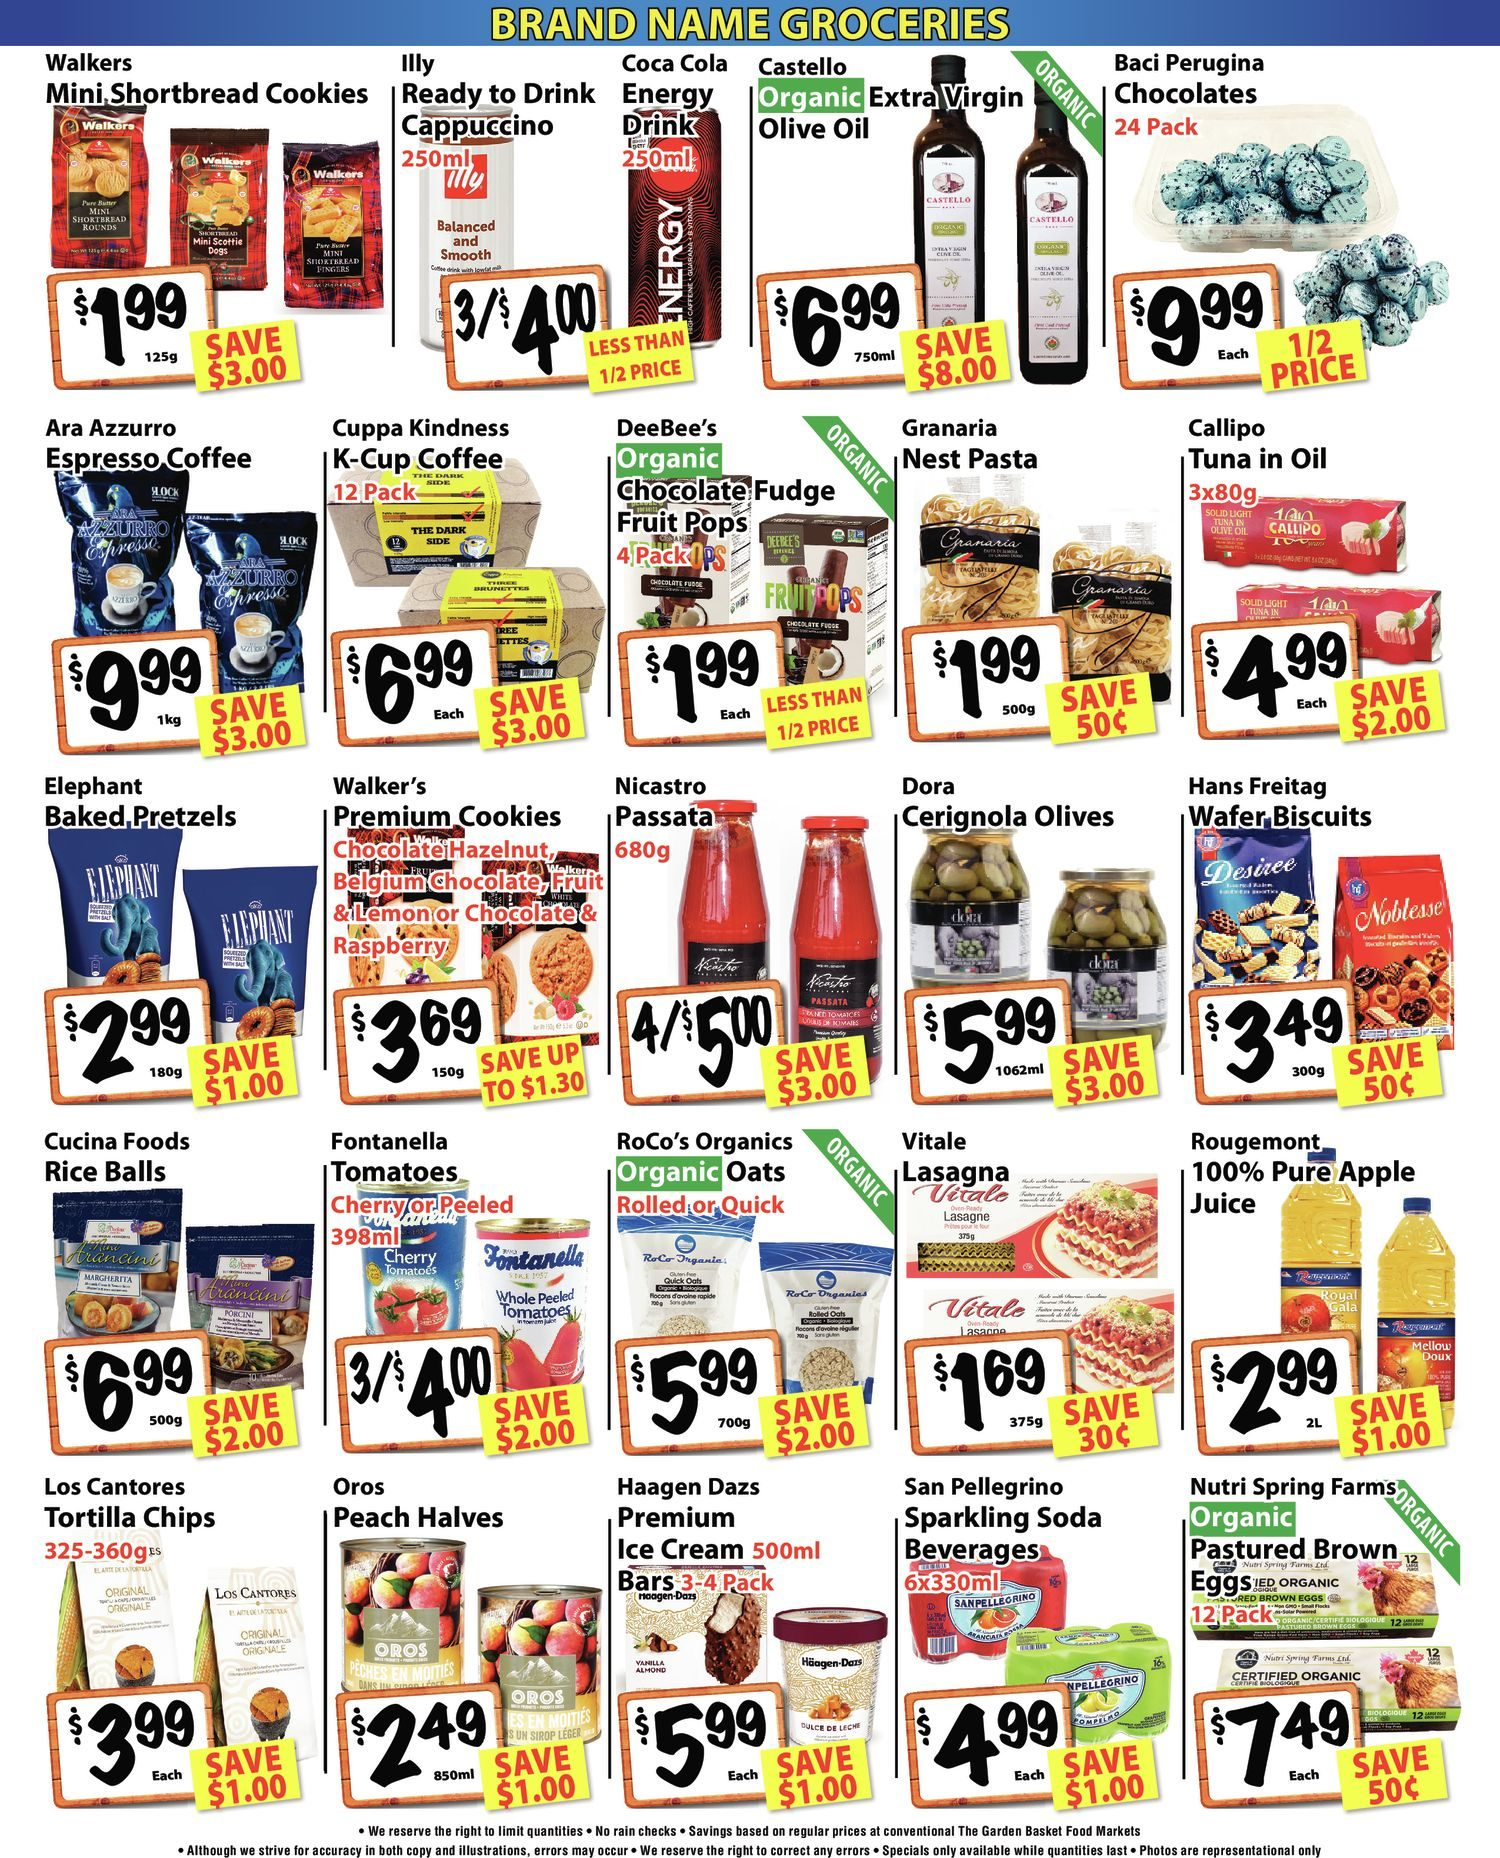 The Garden Basket - Weekly Flyer Specials - Page 4